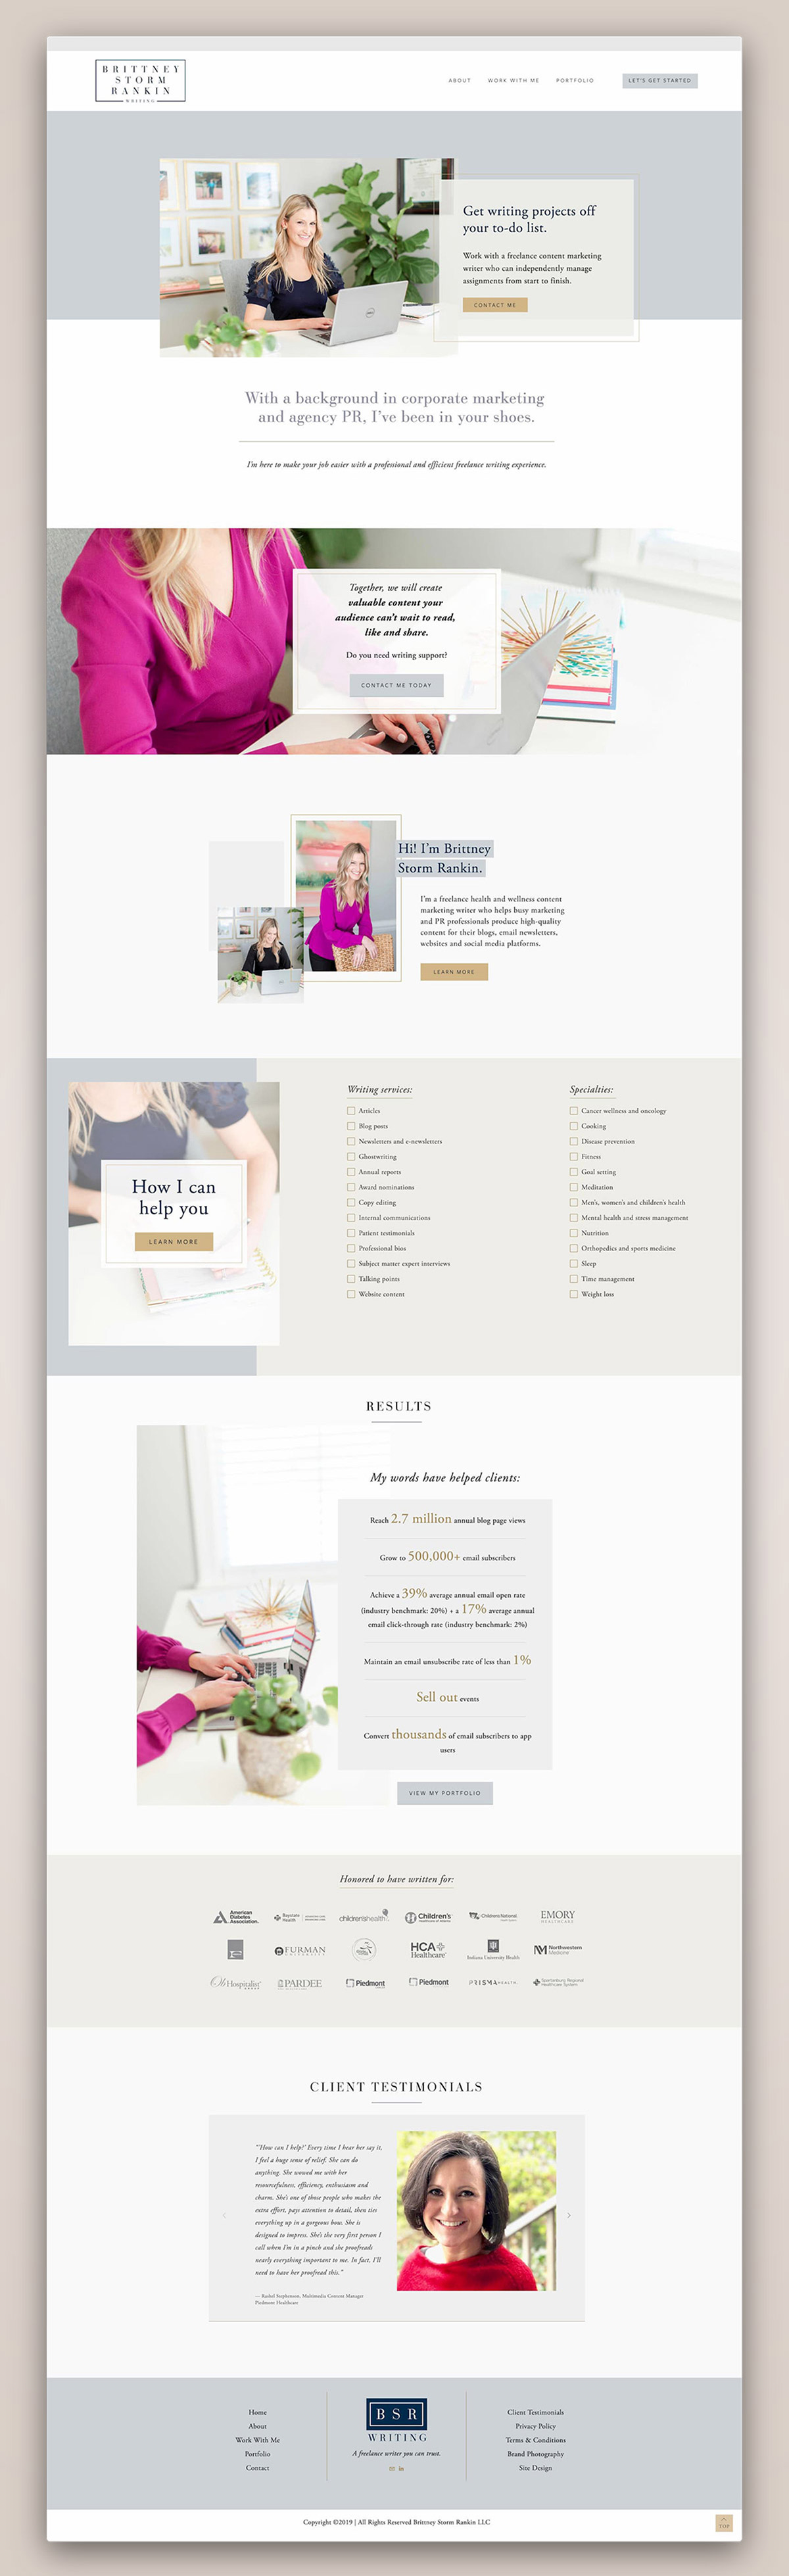 Brittney Storm Rankin Writing Home page | Squarespace web design by Jodi Neufeld Design #squarespace #writerwebsite #webdesign #feminine